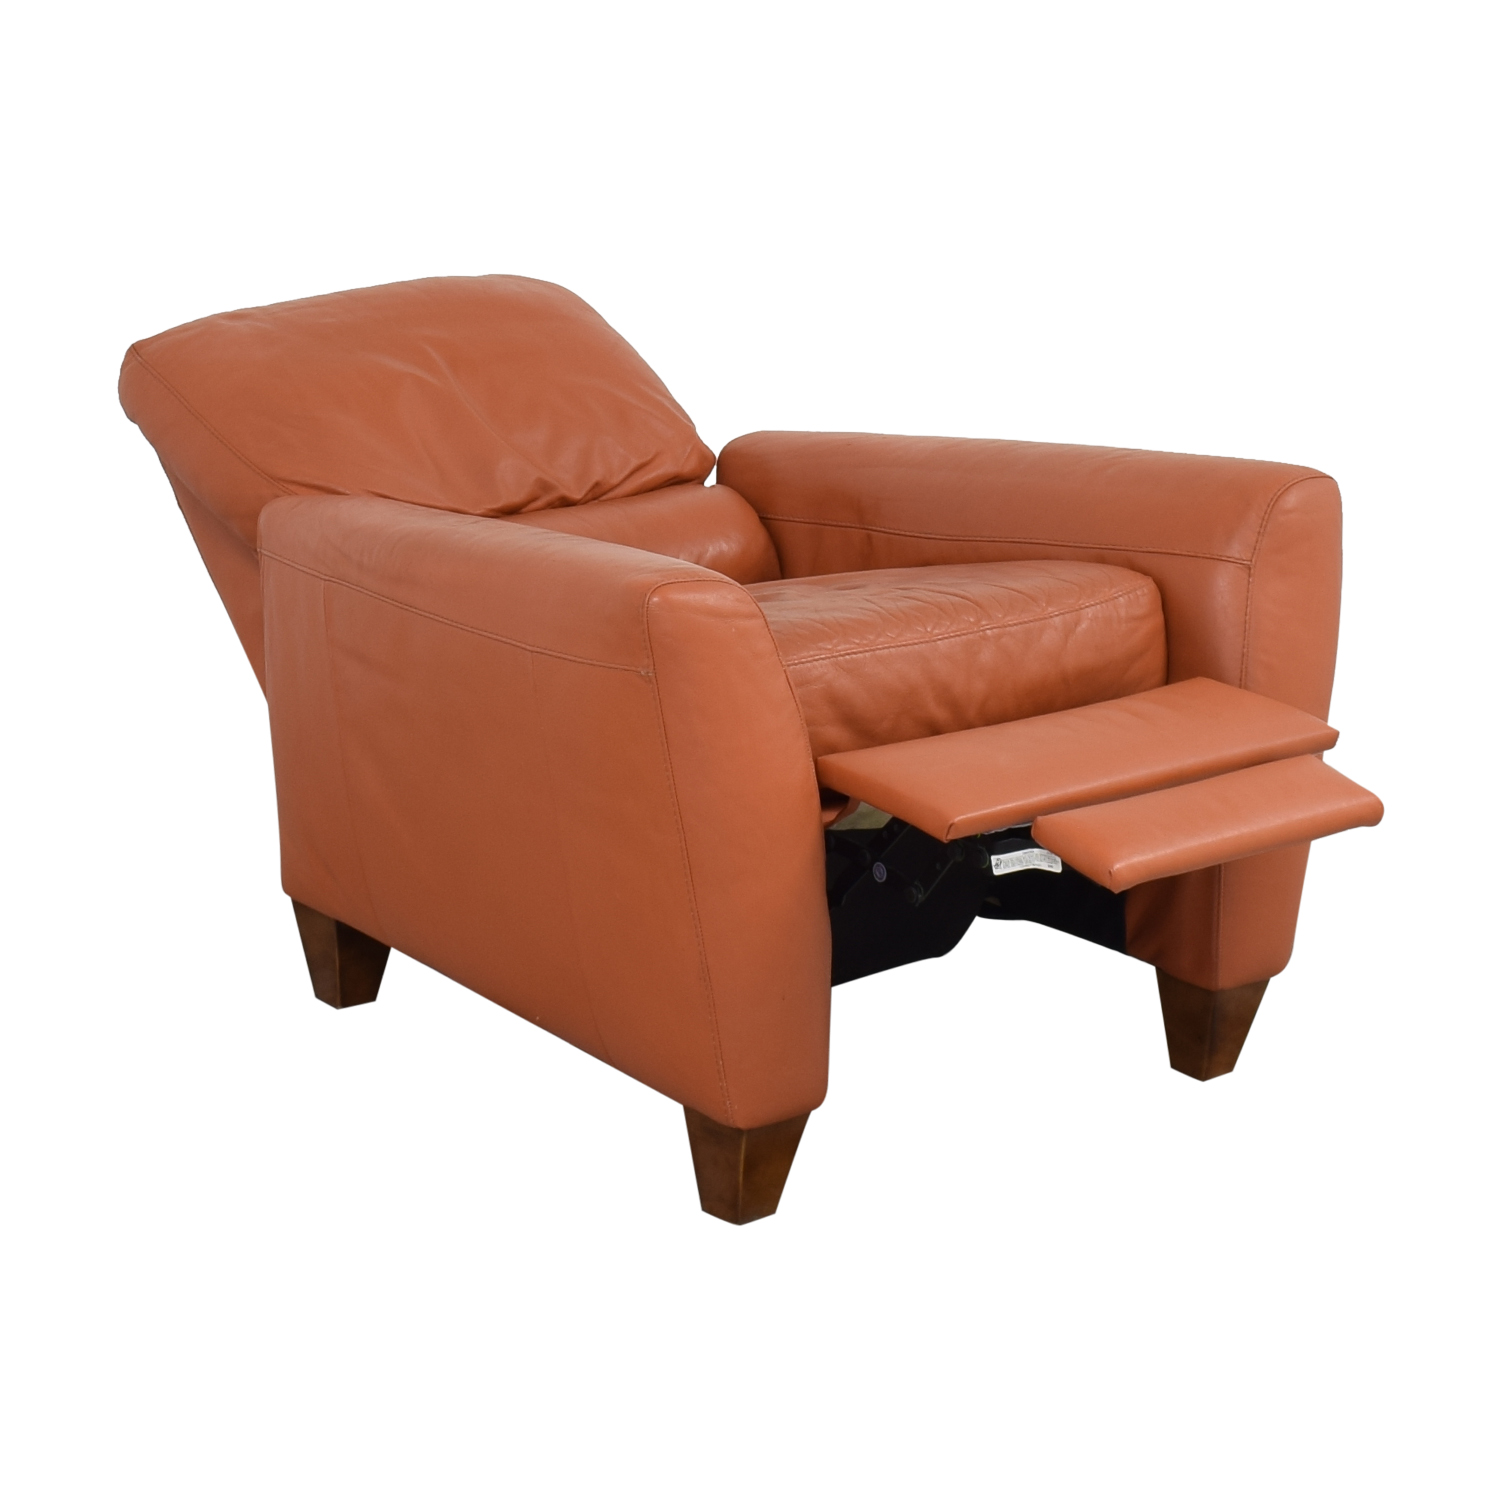 Italsofa Recliner / Chairs